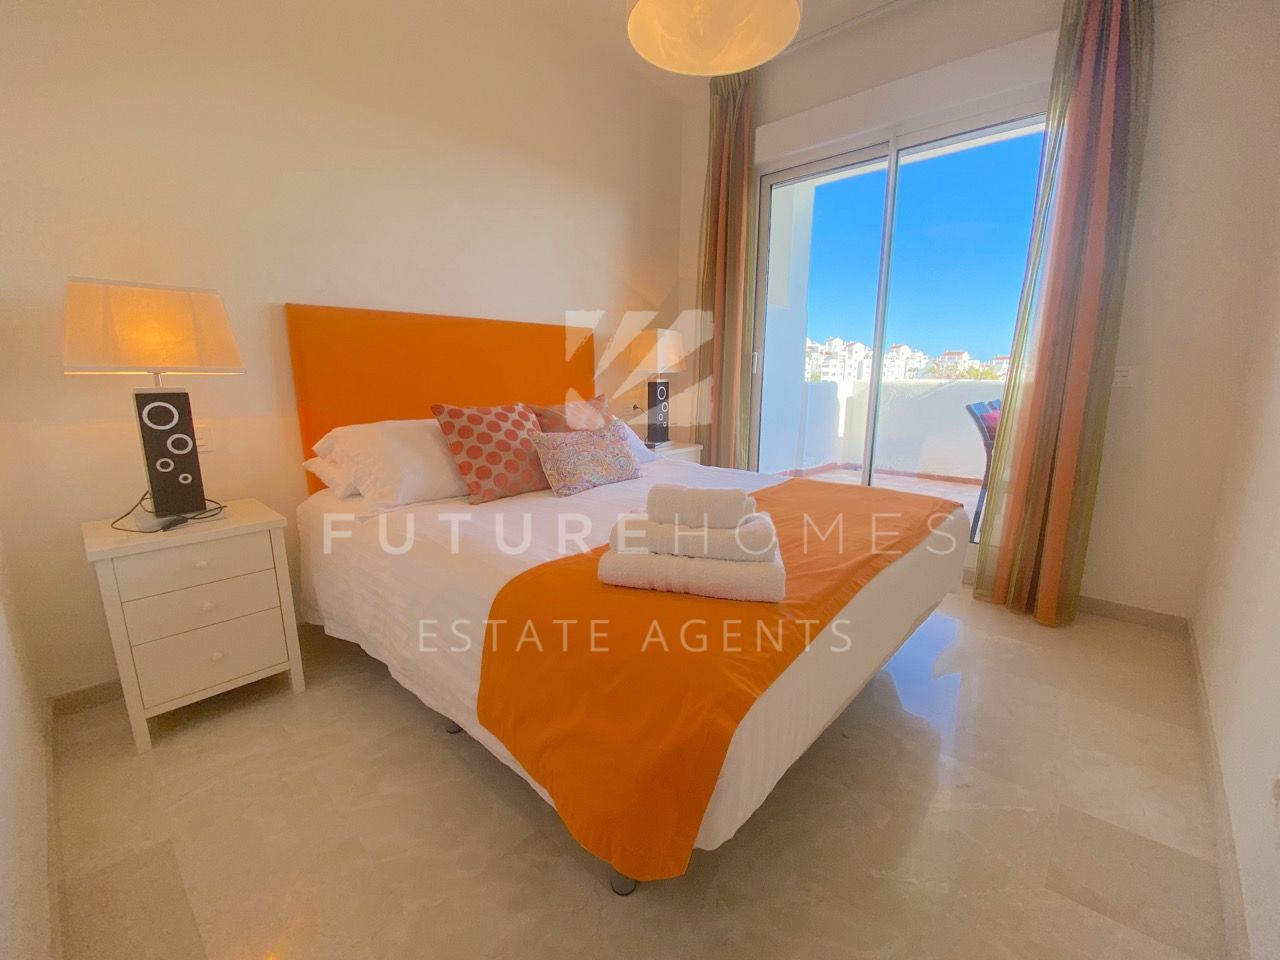 Absolute front line golf apartment with sea views ready to move into 5 minutes drive from Estepona port!